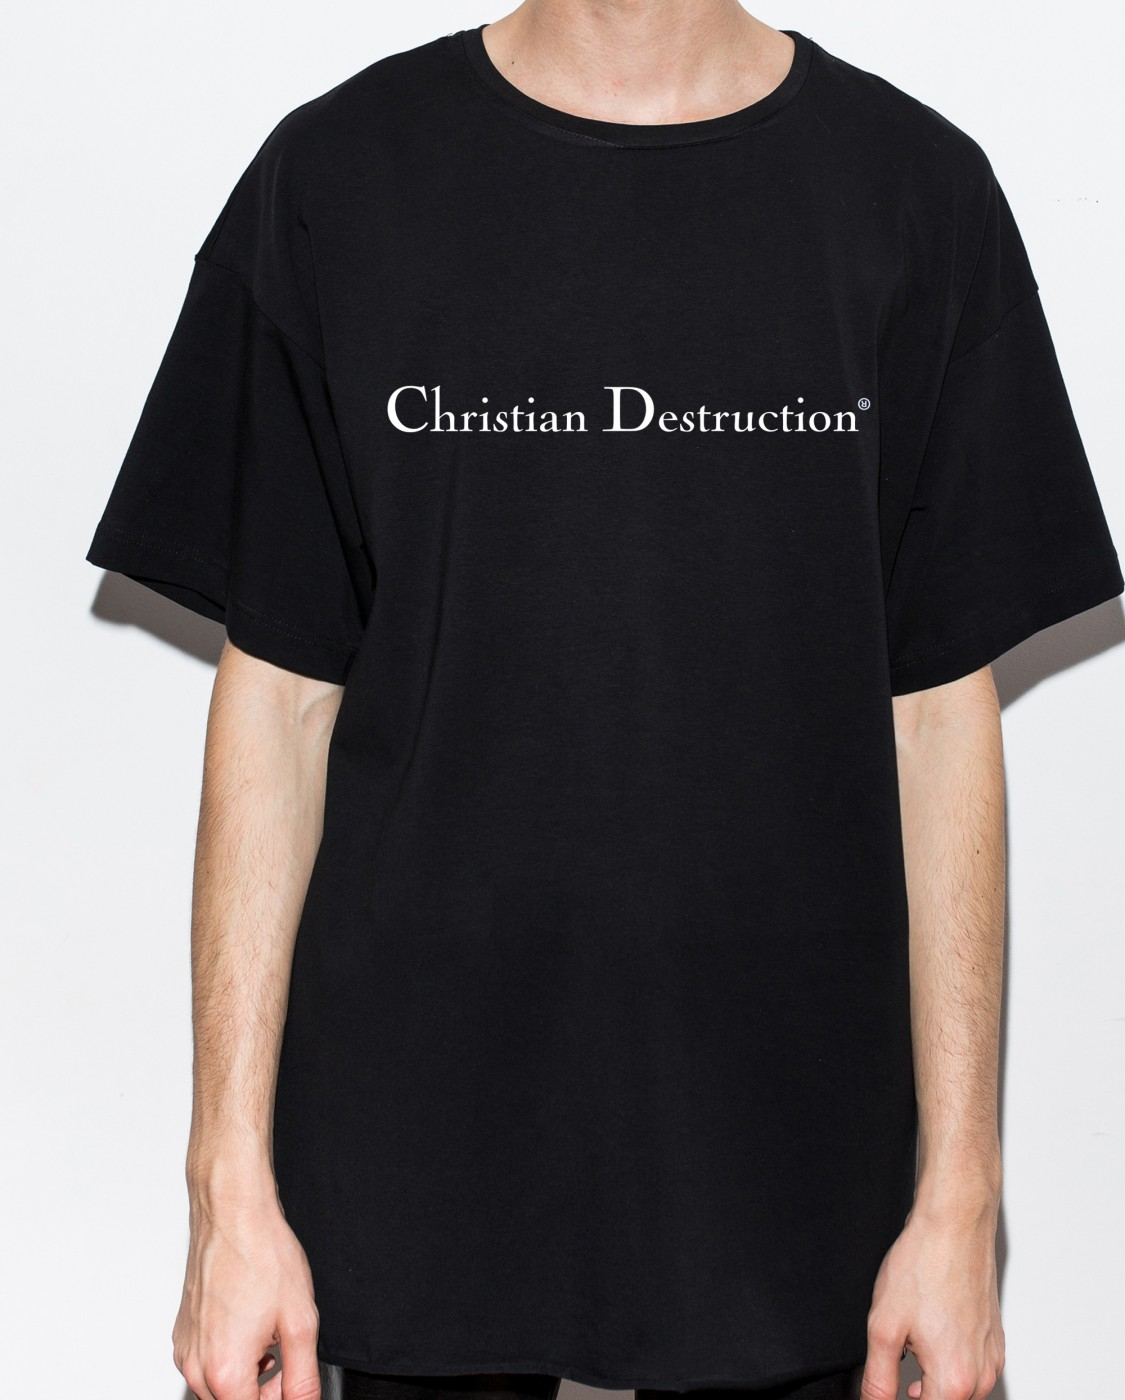 Christian Destraction